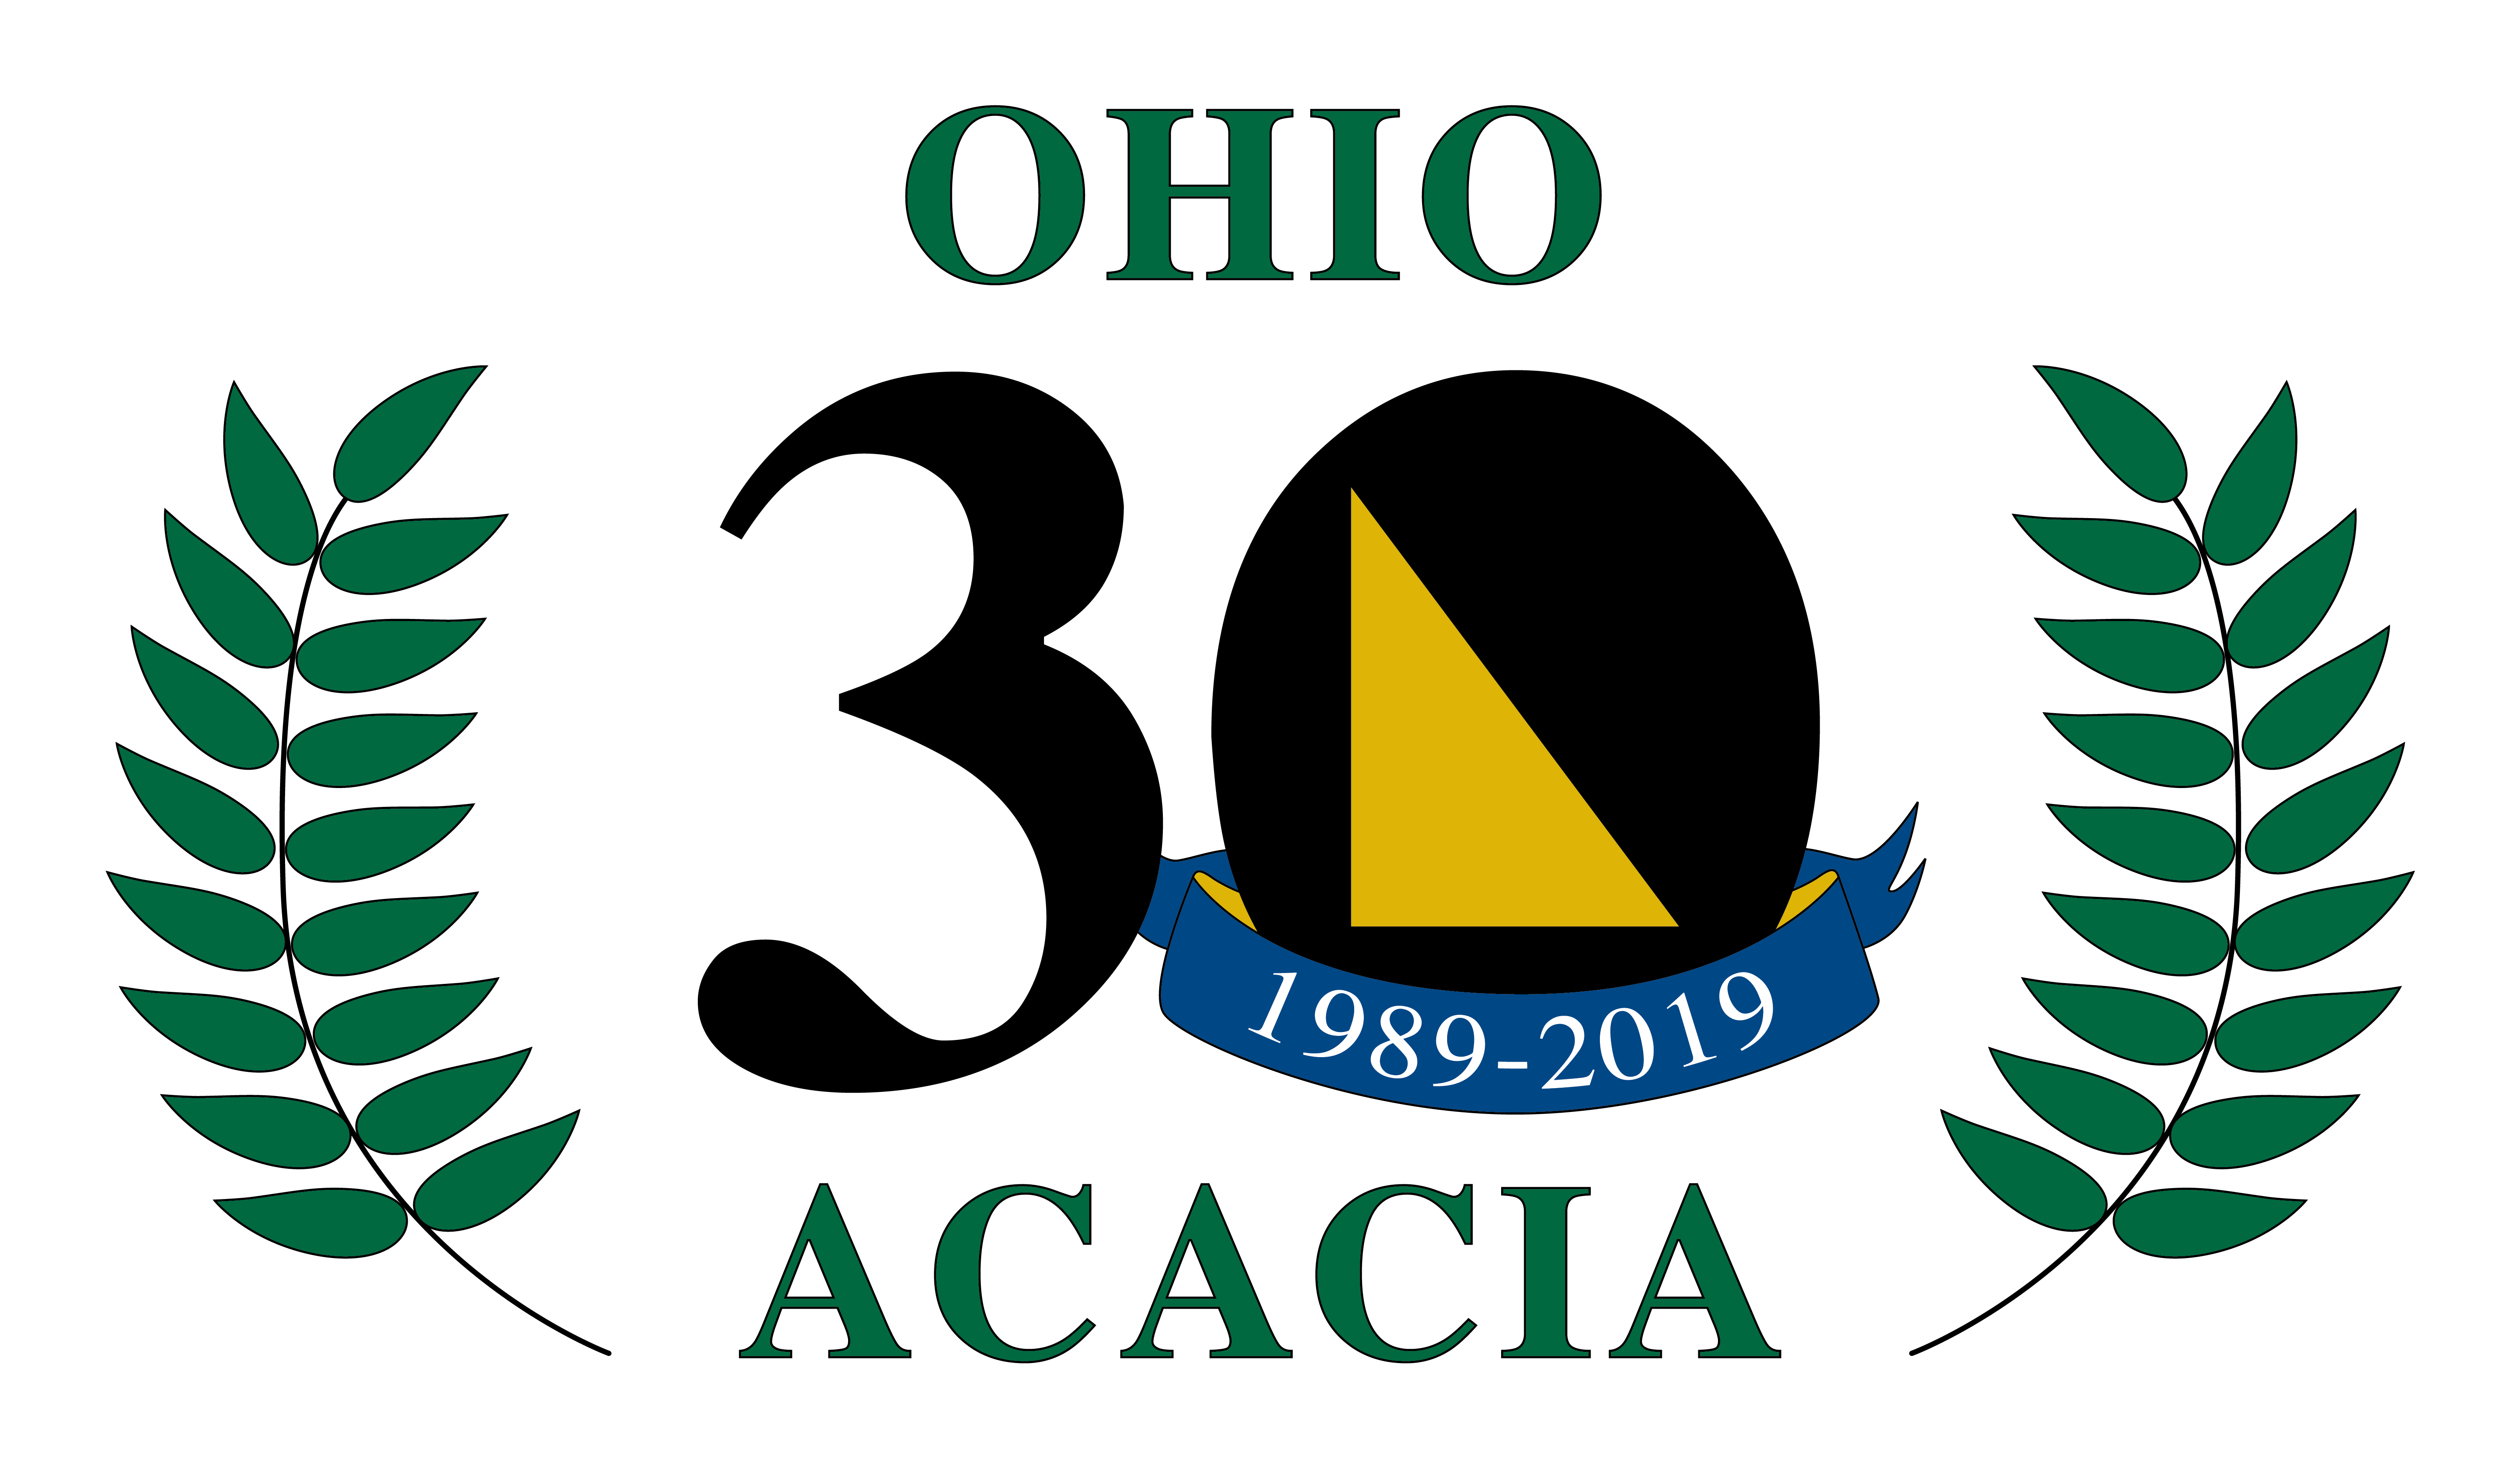 Founder's Day 2019 - Celebrating 30 Years of